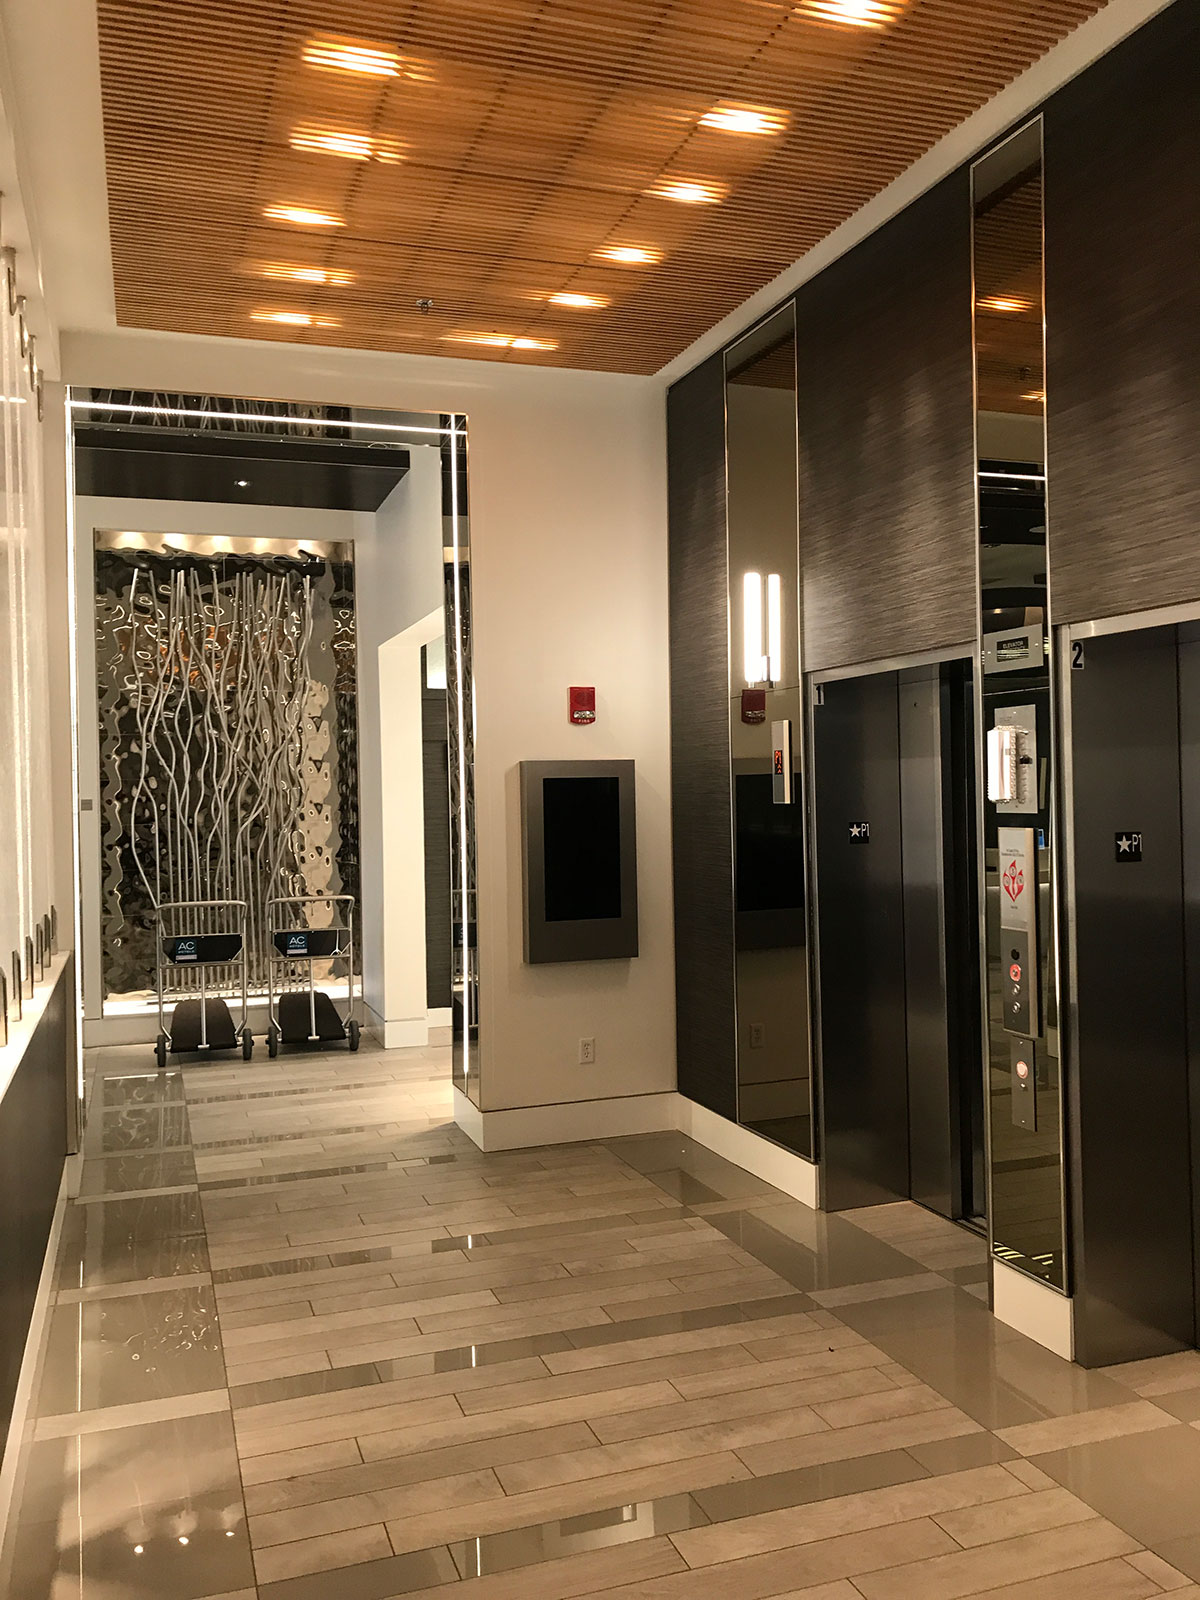 AC Marriott Asheville, by Stratton Design Group